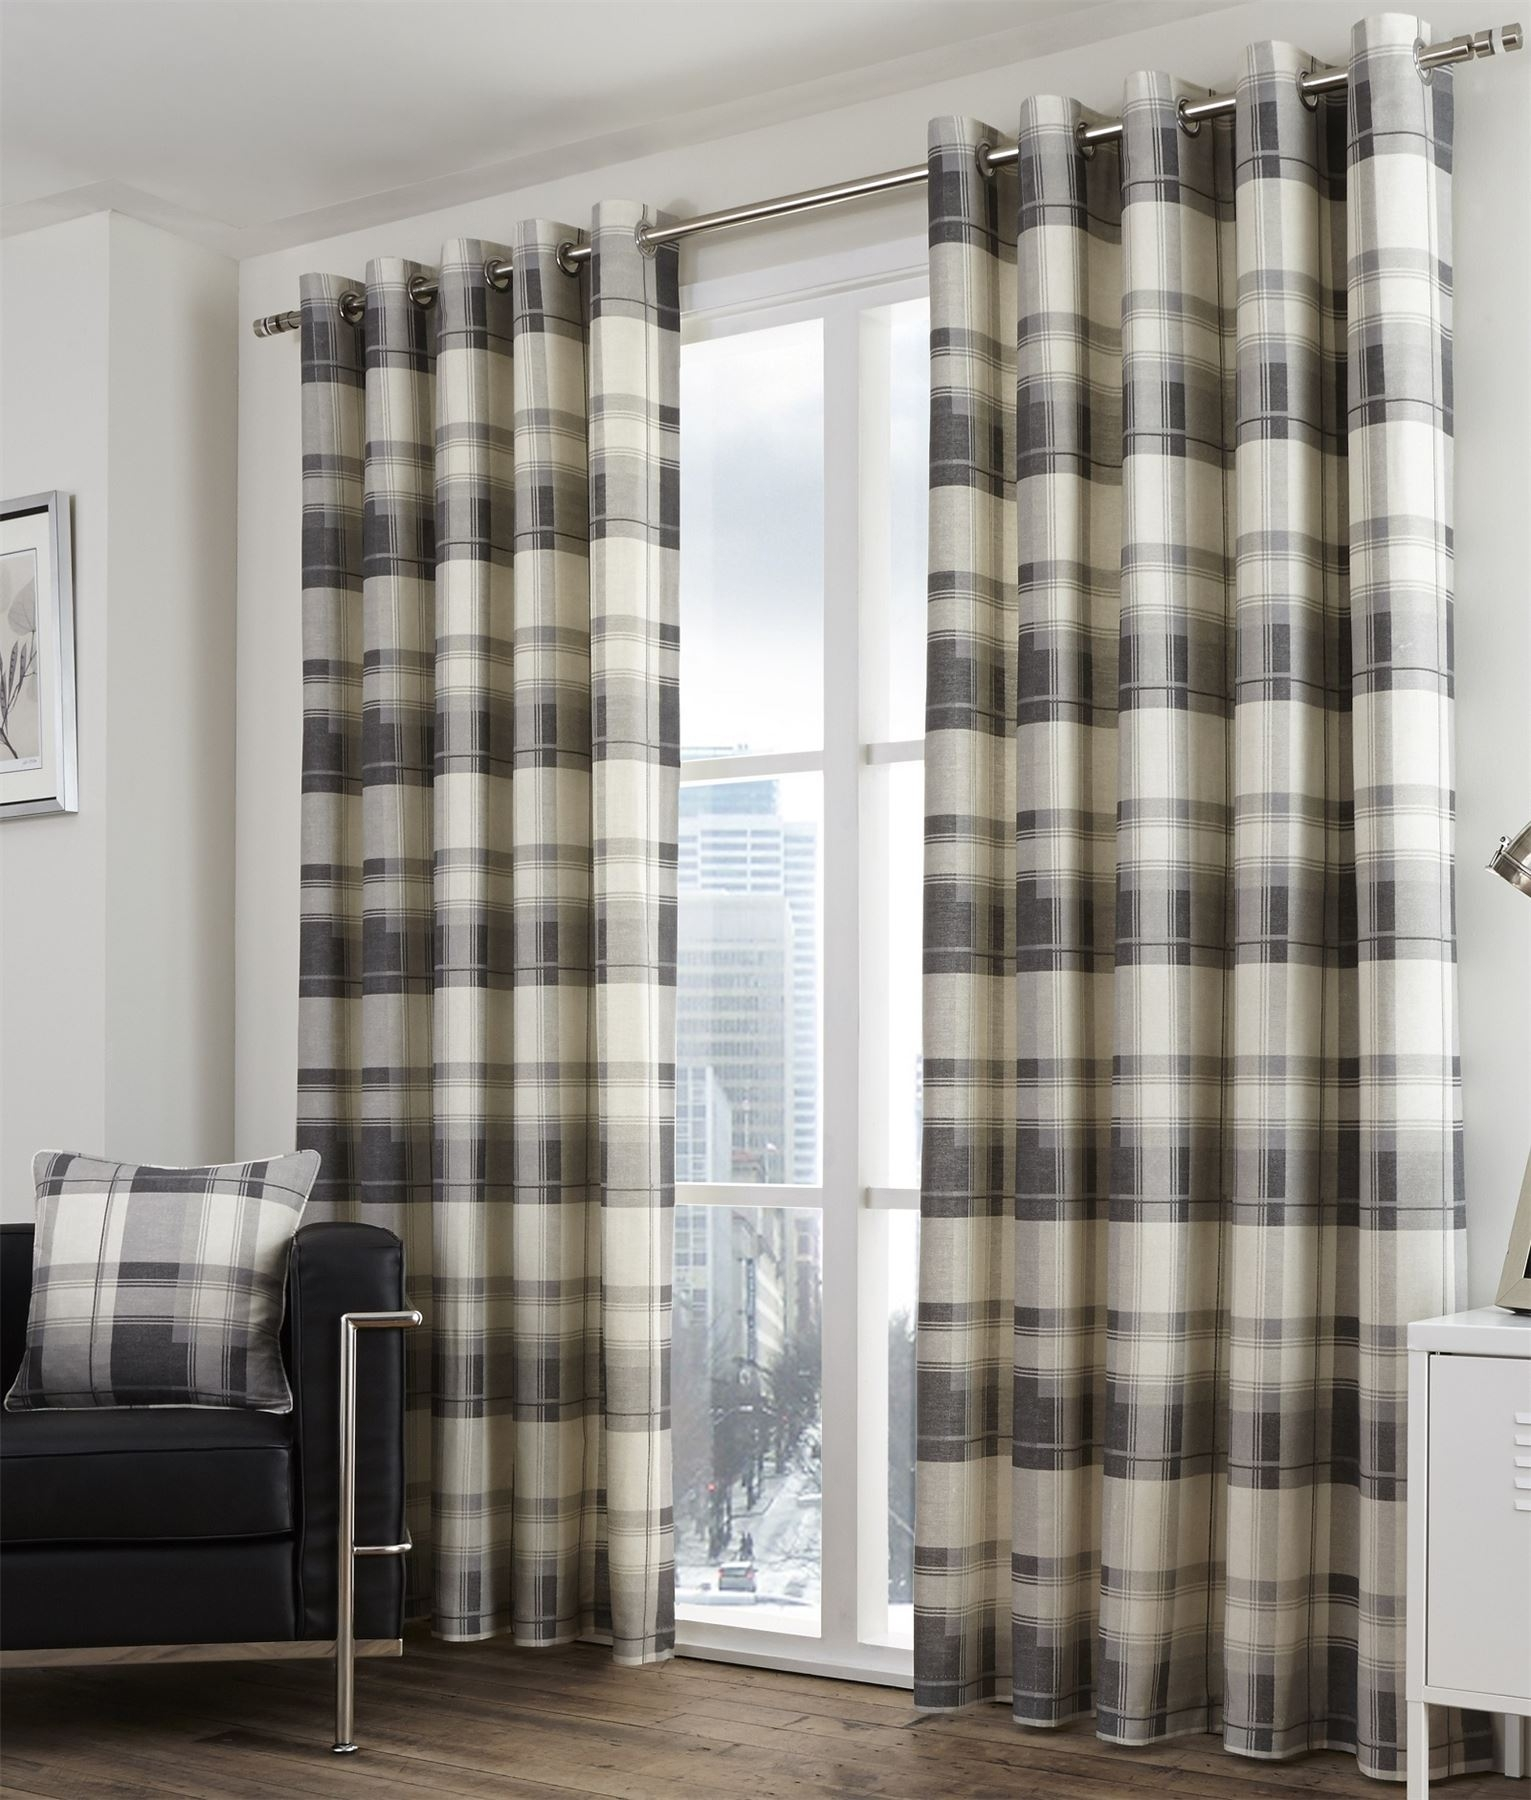 Bonnie Lined Eyelet Curtains Checked Tartan Cotton Ready Made Pair Within Lined Cotton Curtains (Image 5 of 15)